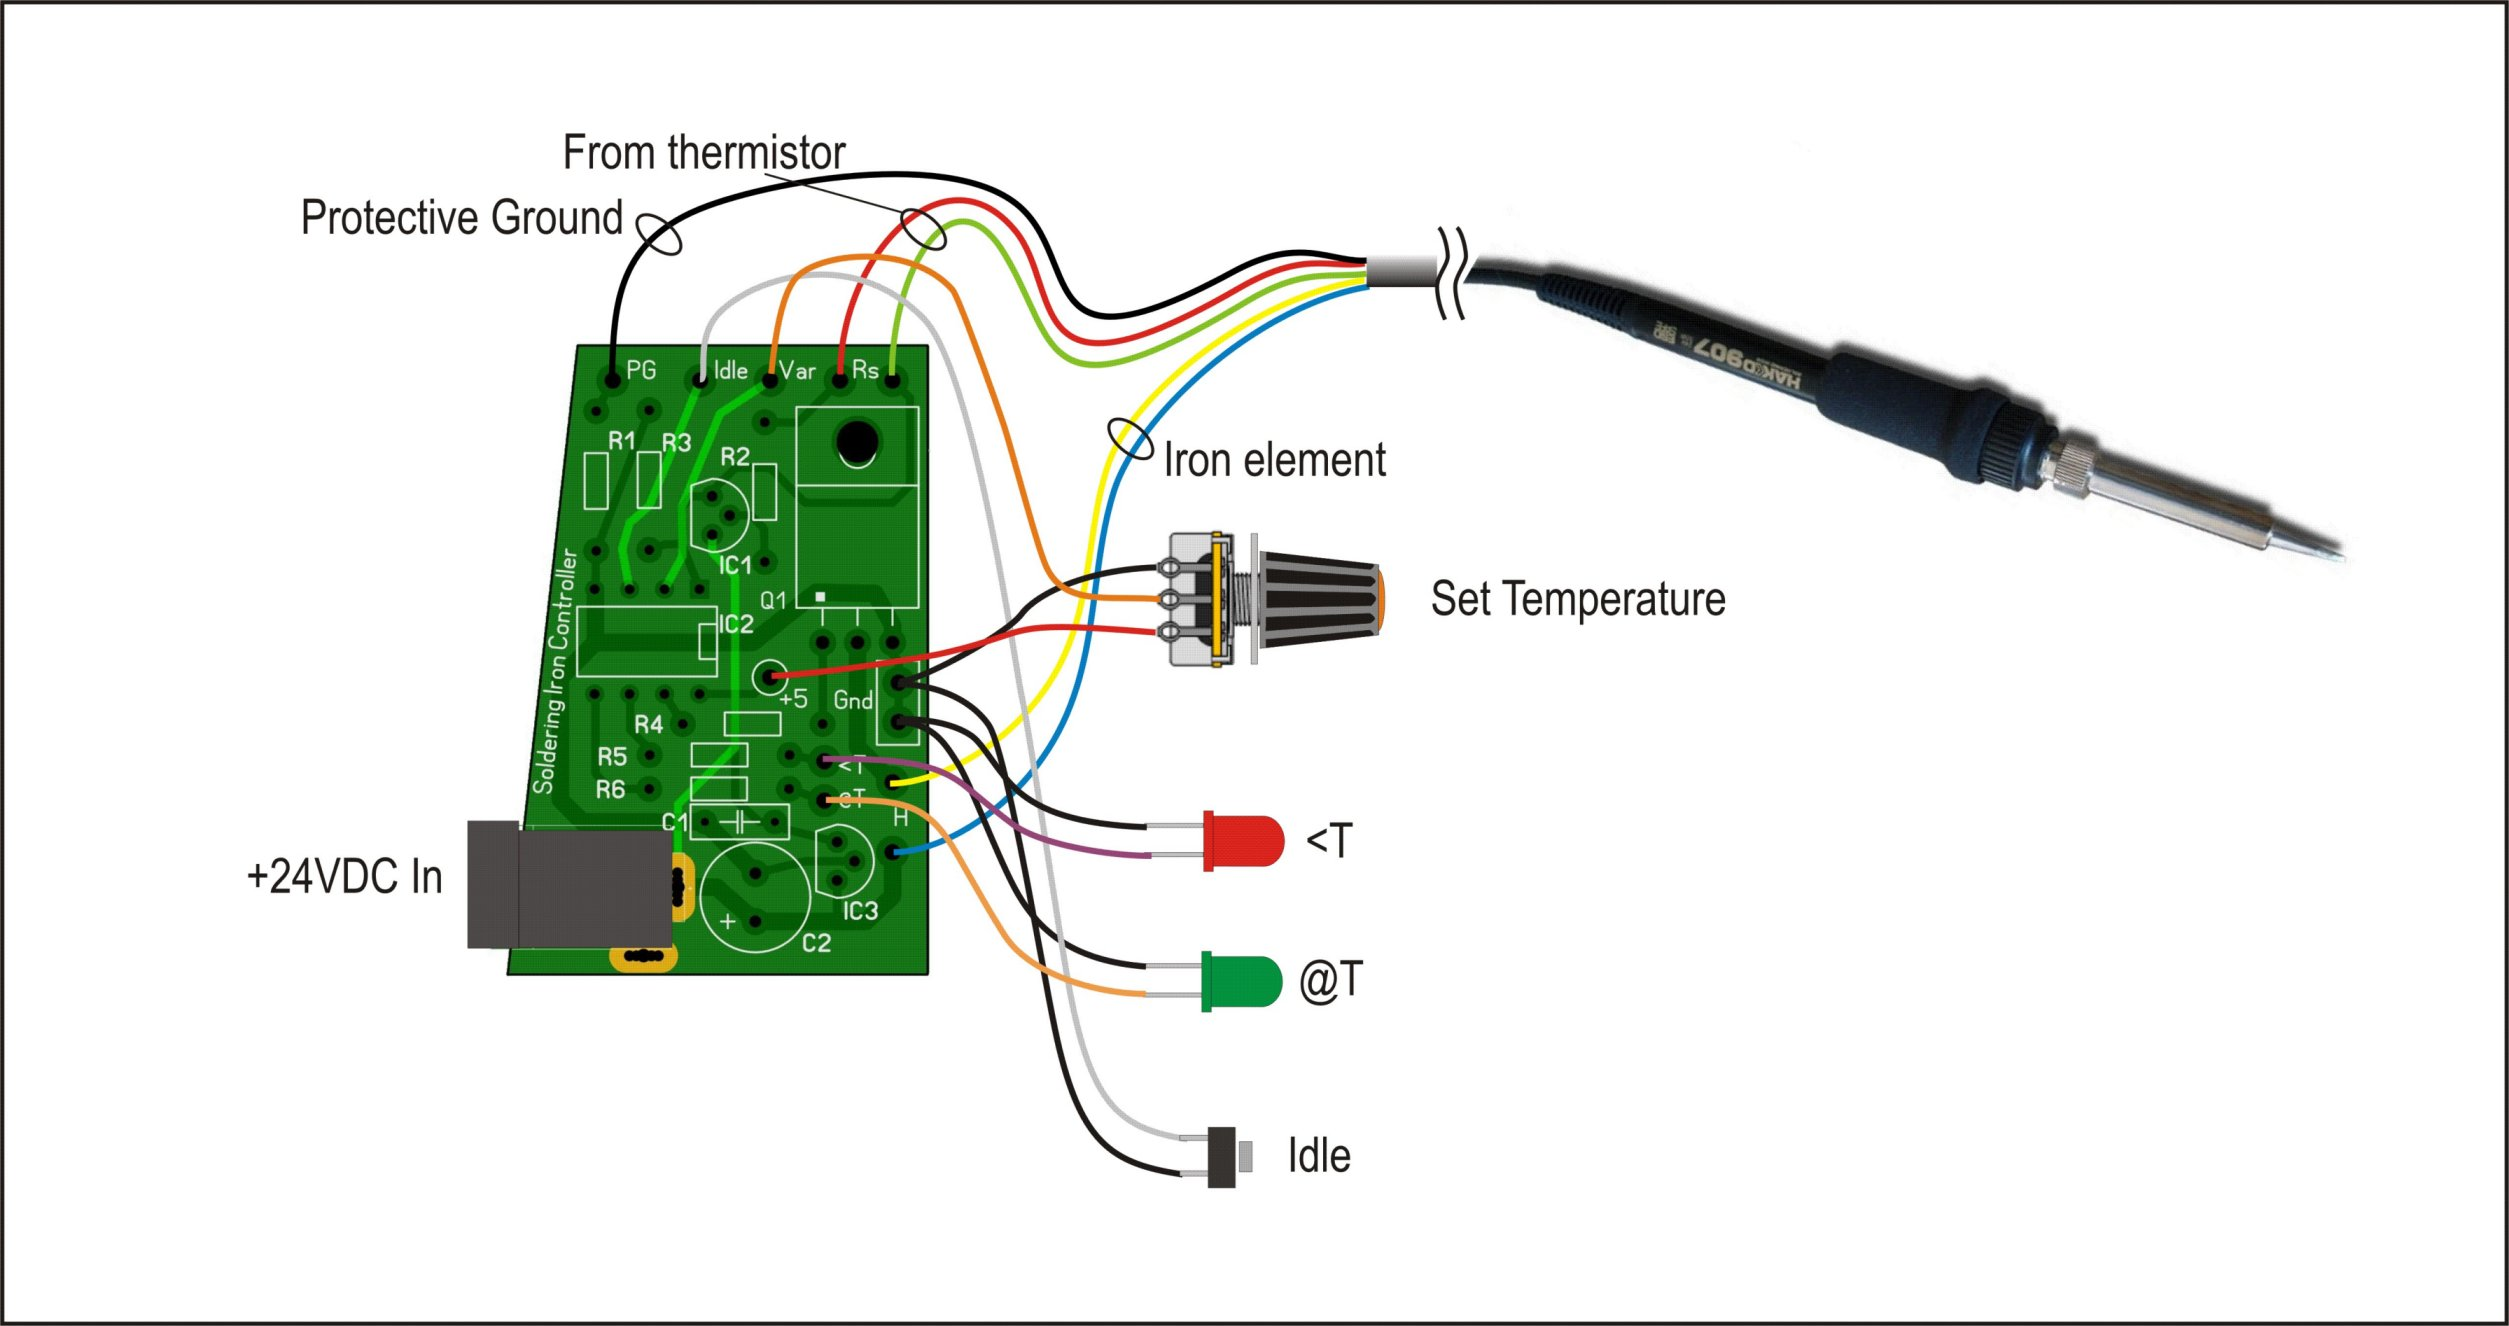 I o card wiring diagram useful psone wiring diagrams anthony thomas ering iron connection diagram ering image diy ering iron controller diy biji us on ering iron cheapraybanclubmaster Image collections